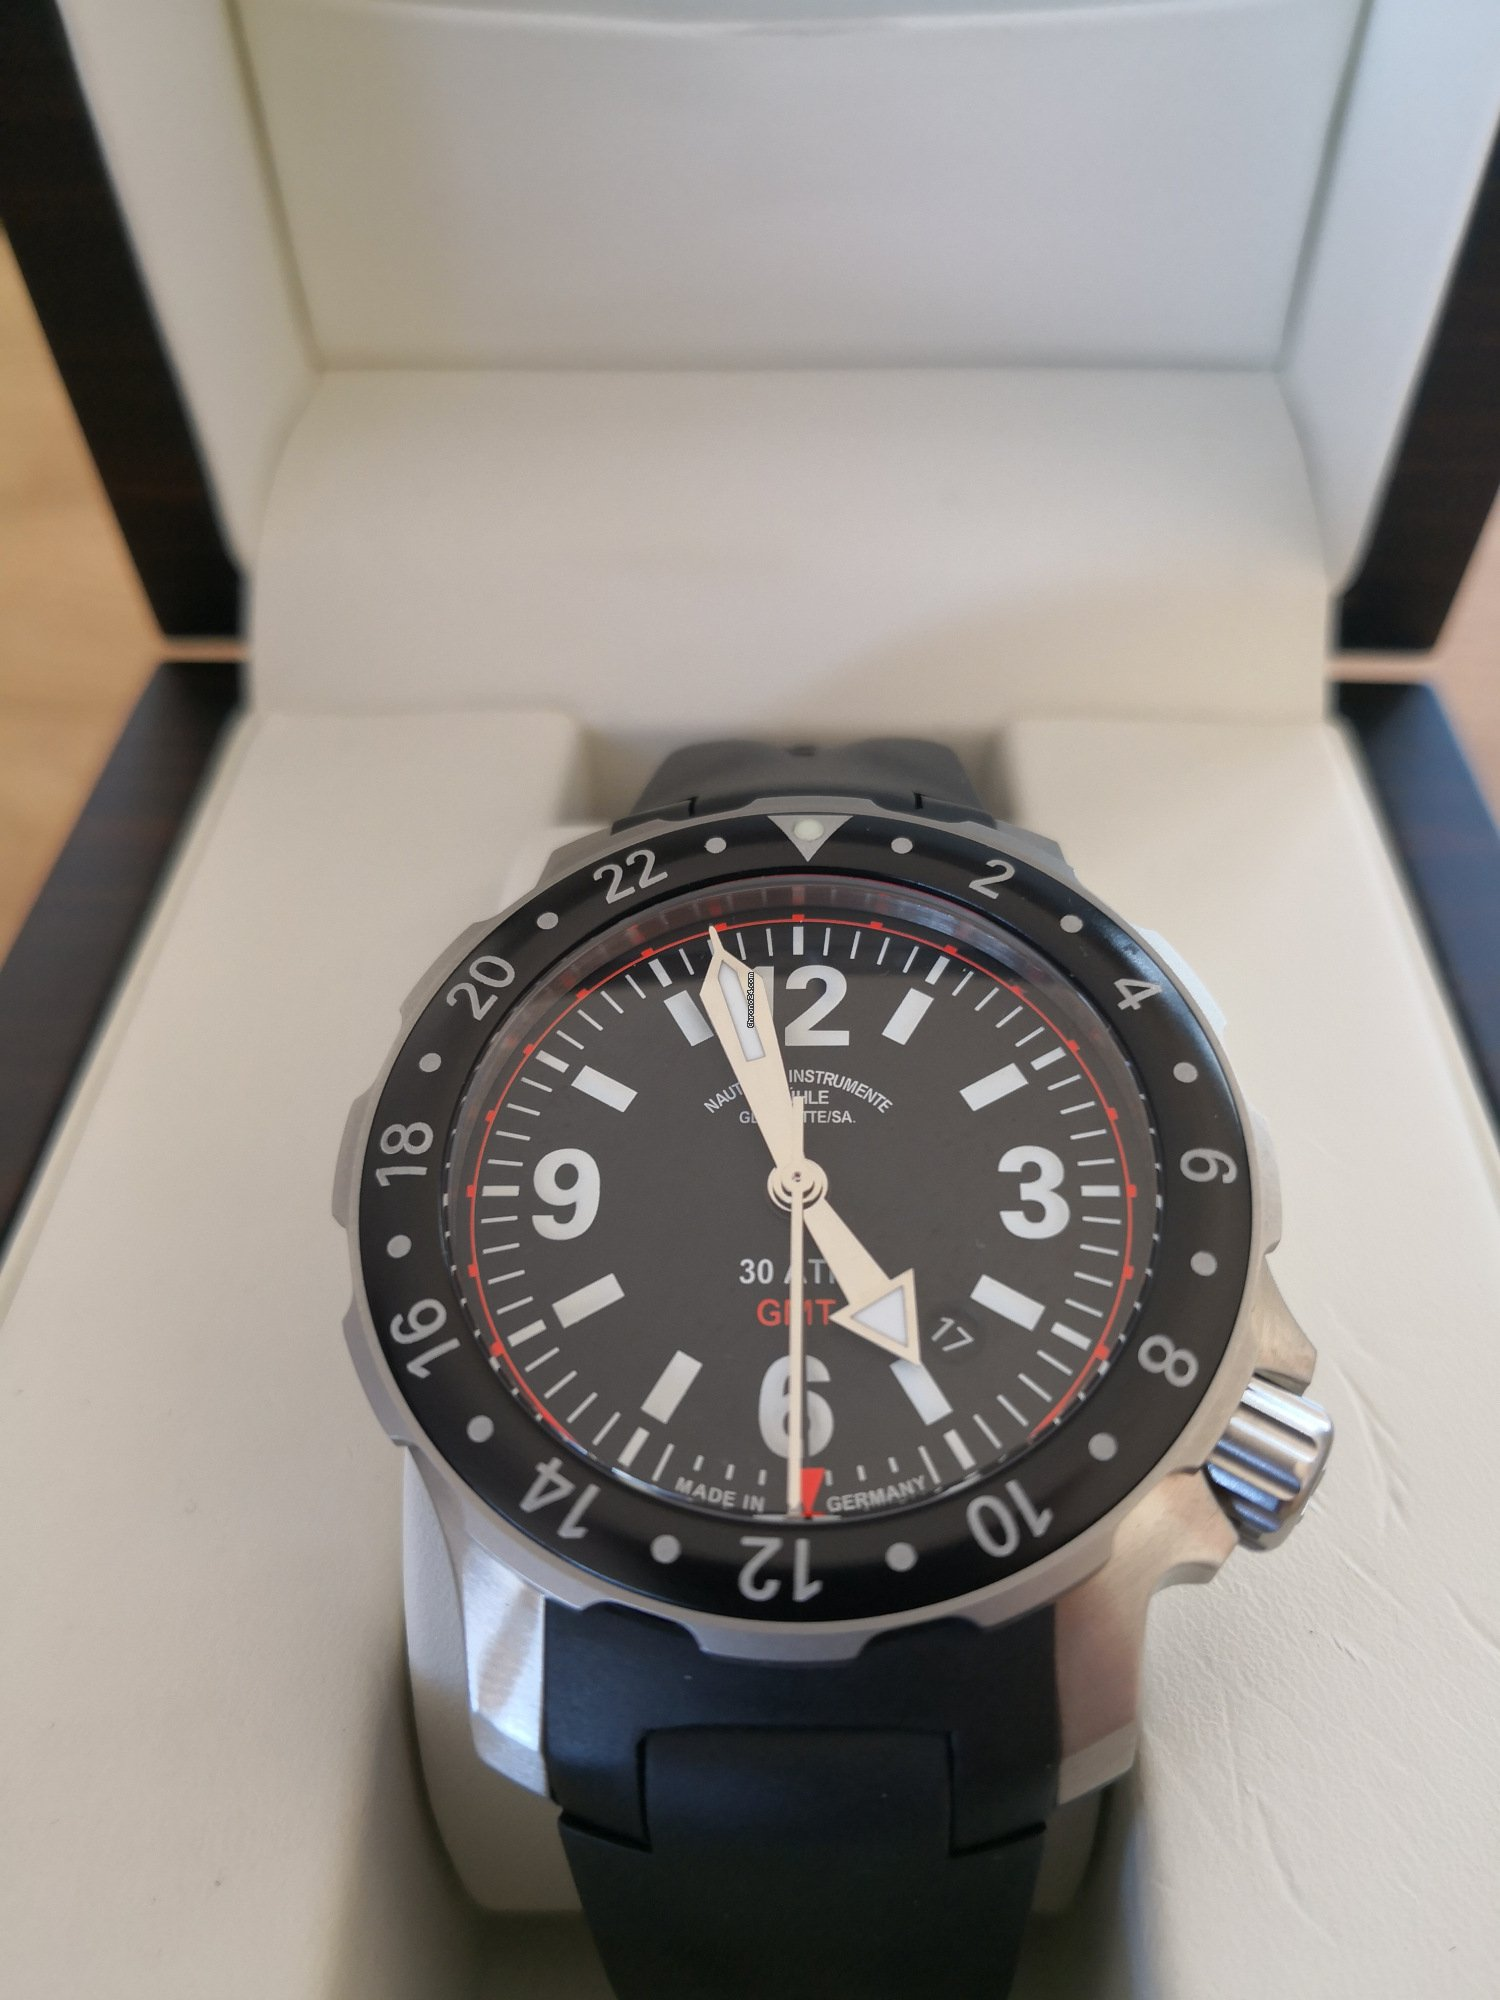 Mühle Glashütte Marinus GMT for Rp. 27,164,738 for sale from